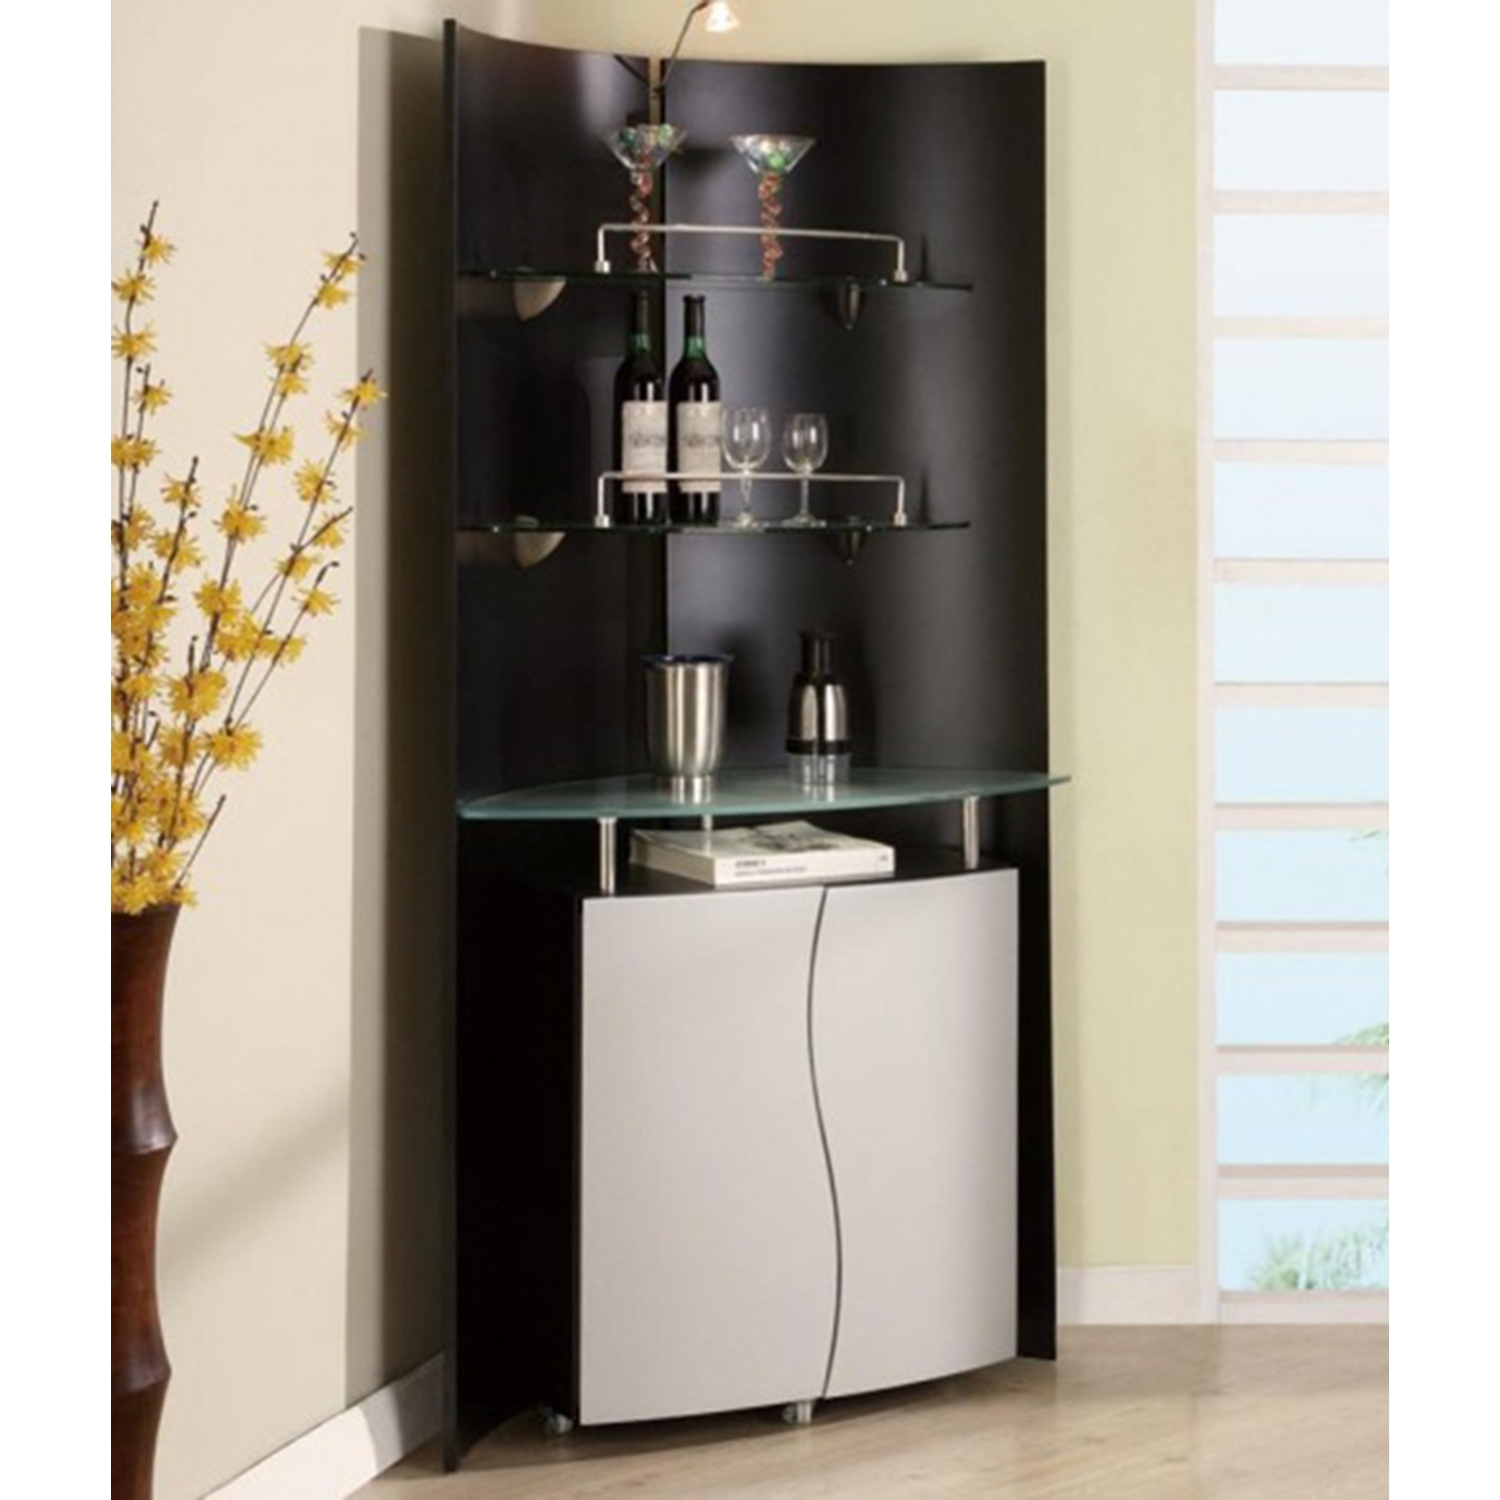 at home bar furniture. Home Bar Unit In Black And Silver At Furniture O